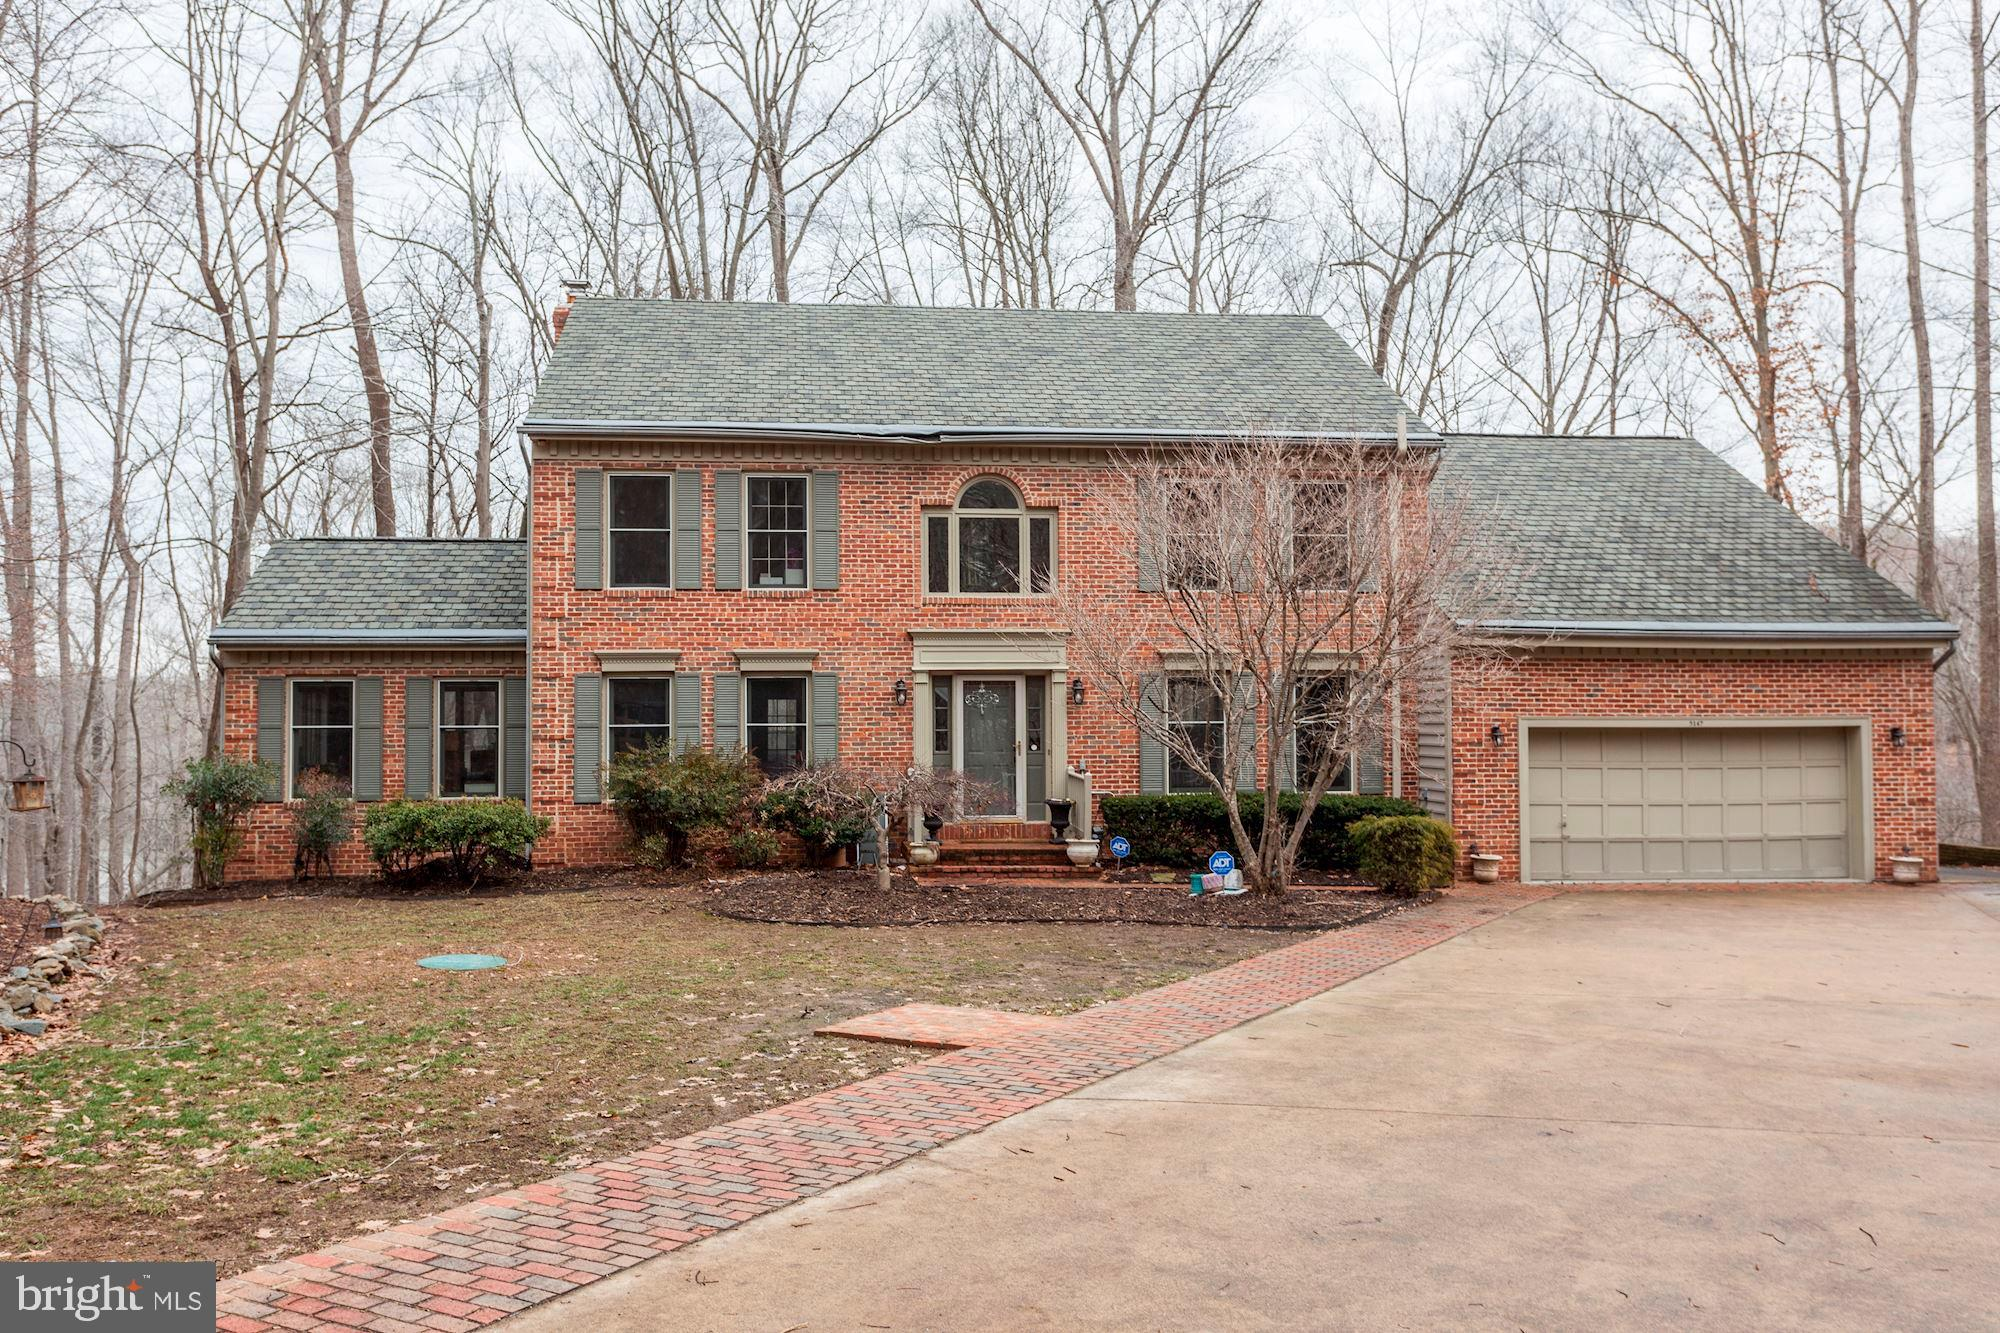 STUNNING WATERFRONT WITH DOCK WITH 270 DEGREE VIEW OF THE OCCOQUAN WITH AMAZING WATER VIEWS FROM MOST ROOMS ON OVER 3 1/2 ACRES***YOU ARE ALMOST ON YOUR OWN PENINSULA!!!****REMODELED TOP OF THE LINE KITCHEN, MOCHA HARDWOODS, SKYLIGHTS IN REMODELED MASTER BATH WITH TRAVERTINE -***ONE OF THE MOST BEAUTIFUL NEW GOURMET KITCHENS YOU WILL SEE WITH HUGE CENTER ISLAND, TO P OF THE LINE CABINETS, GRANITE, CABINETS, HUGE WALK-IN PANTRY***AMAZING HAND SCRAPED HARDWOODS THROUGHOUT MOST OF MAIN LEVEL***2 FIREPLACES***REMODELED BATHROOMS INCLUDING TRAVERTINE, STEP UP TUB, SKYLIGHTS, NEW SHOWER GLASS, DOUBLE VANITY (YOU HAVE TO SEE THIS HOME)**ENORMOUS MASTER CLOSET, PATIO, LARGE DECK & DRAMATIC SETTING***2 FIREPLACES***GREAT SCHOOLS INCLUDING COLGAN HIGH SCHOOL**4 CAR GARAGE PARKING